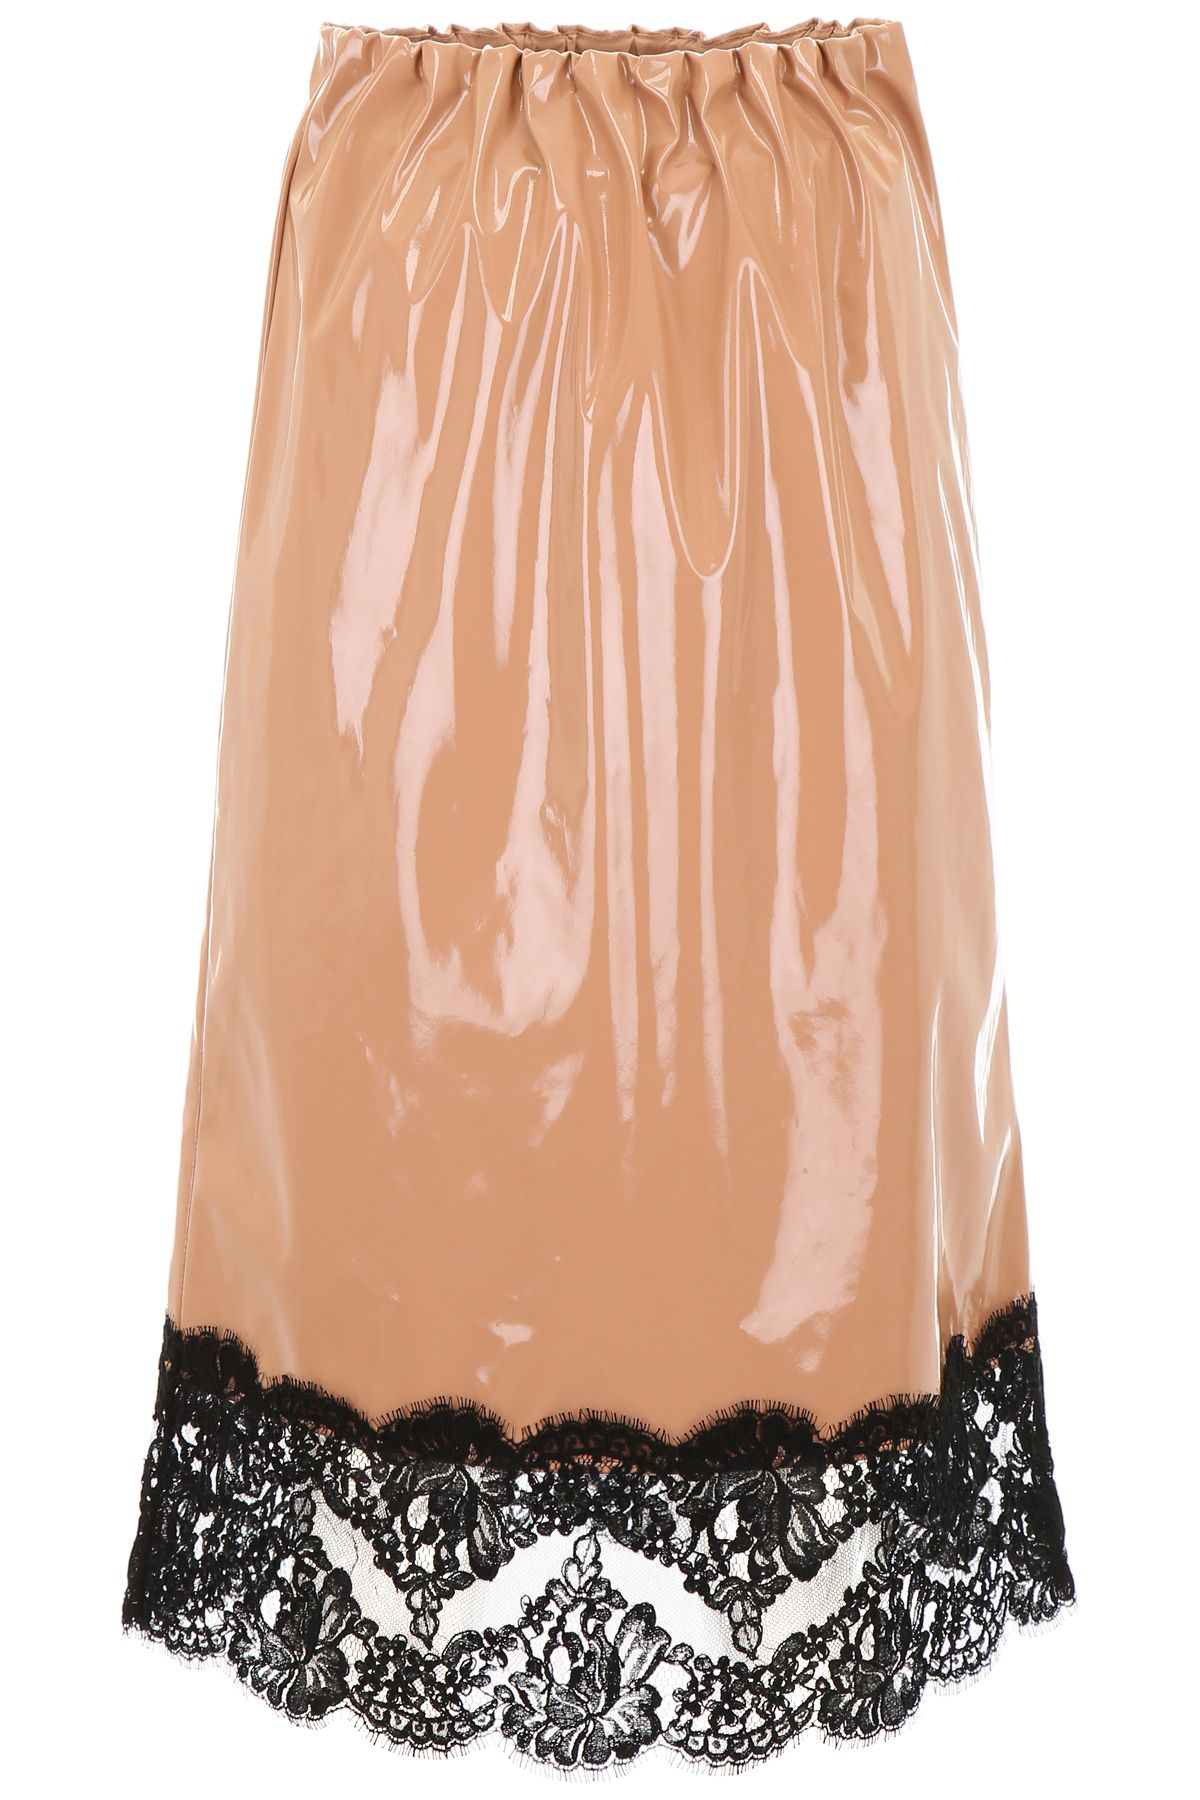 N°21 Patent Faux-Leather A-Line Skirt W/ Lace Trim in Neutrals